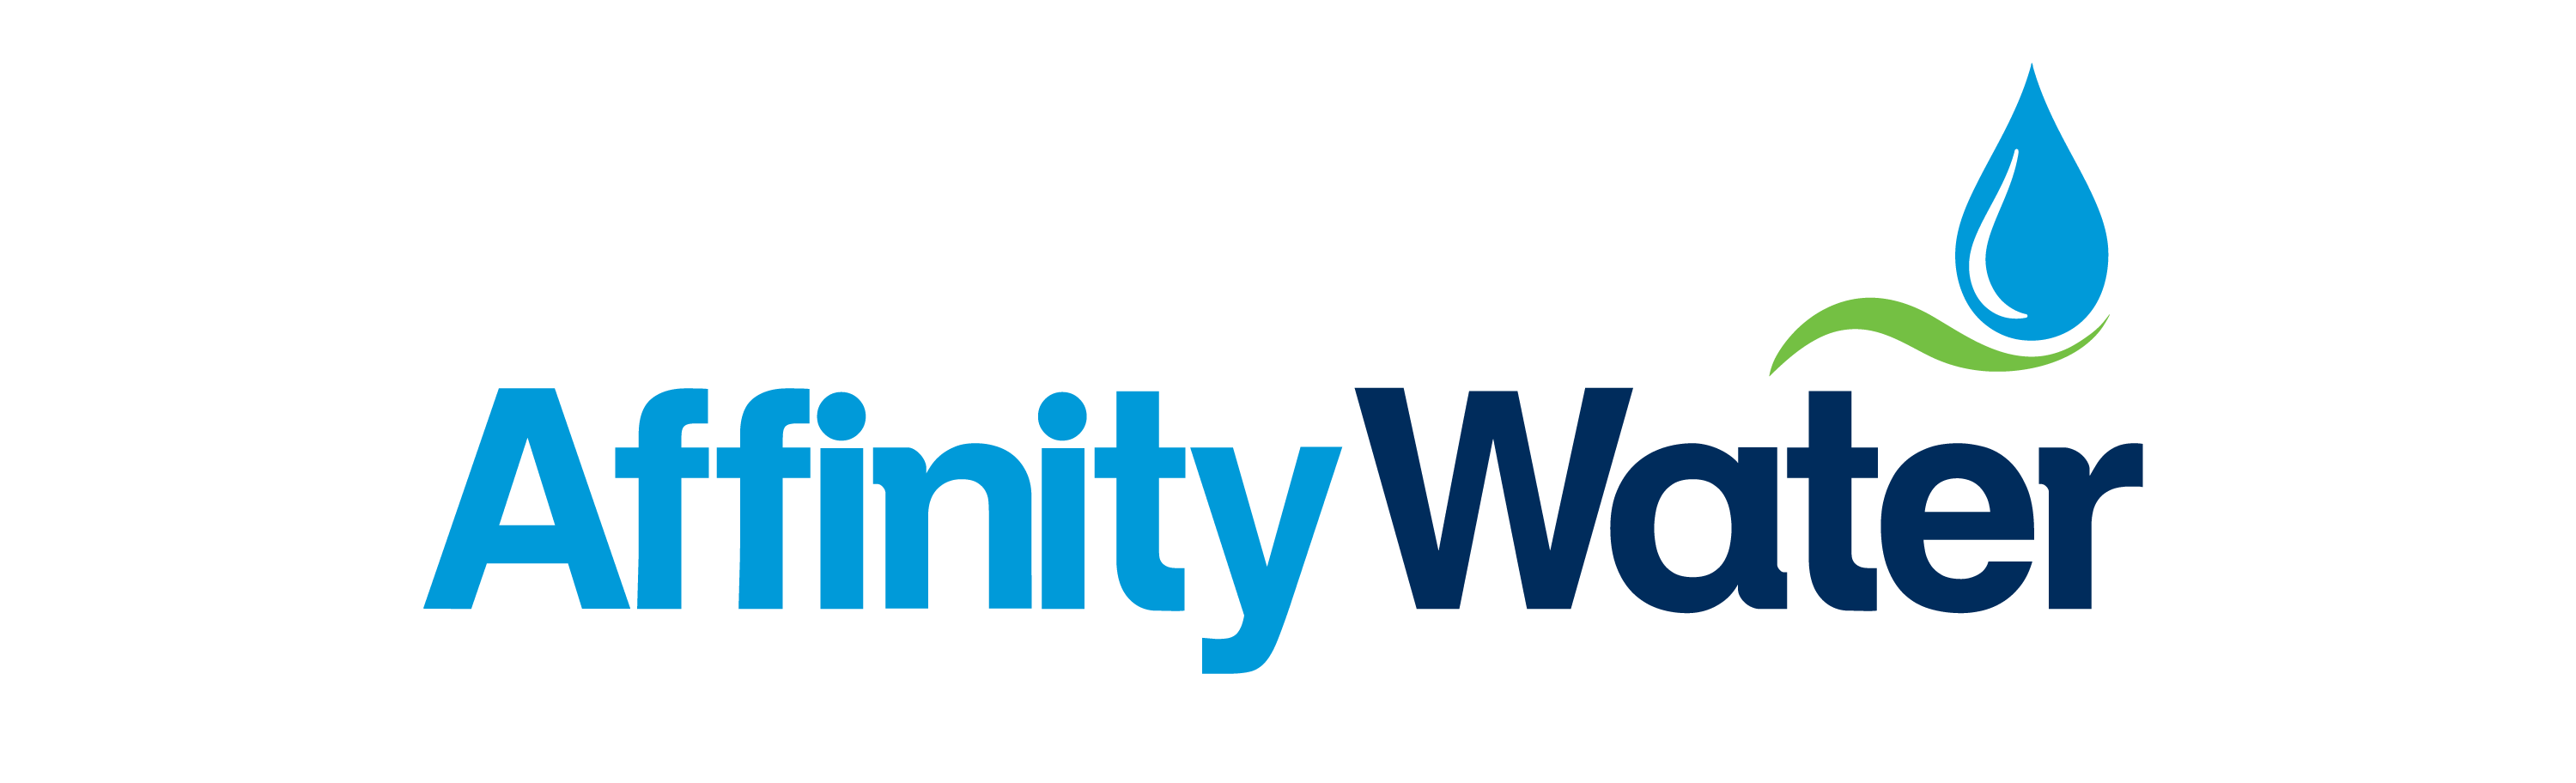 donate-affinity-water-logo